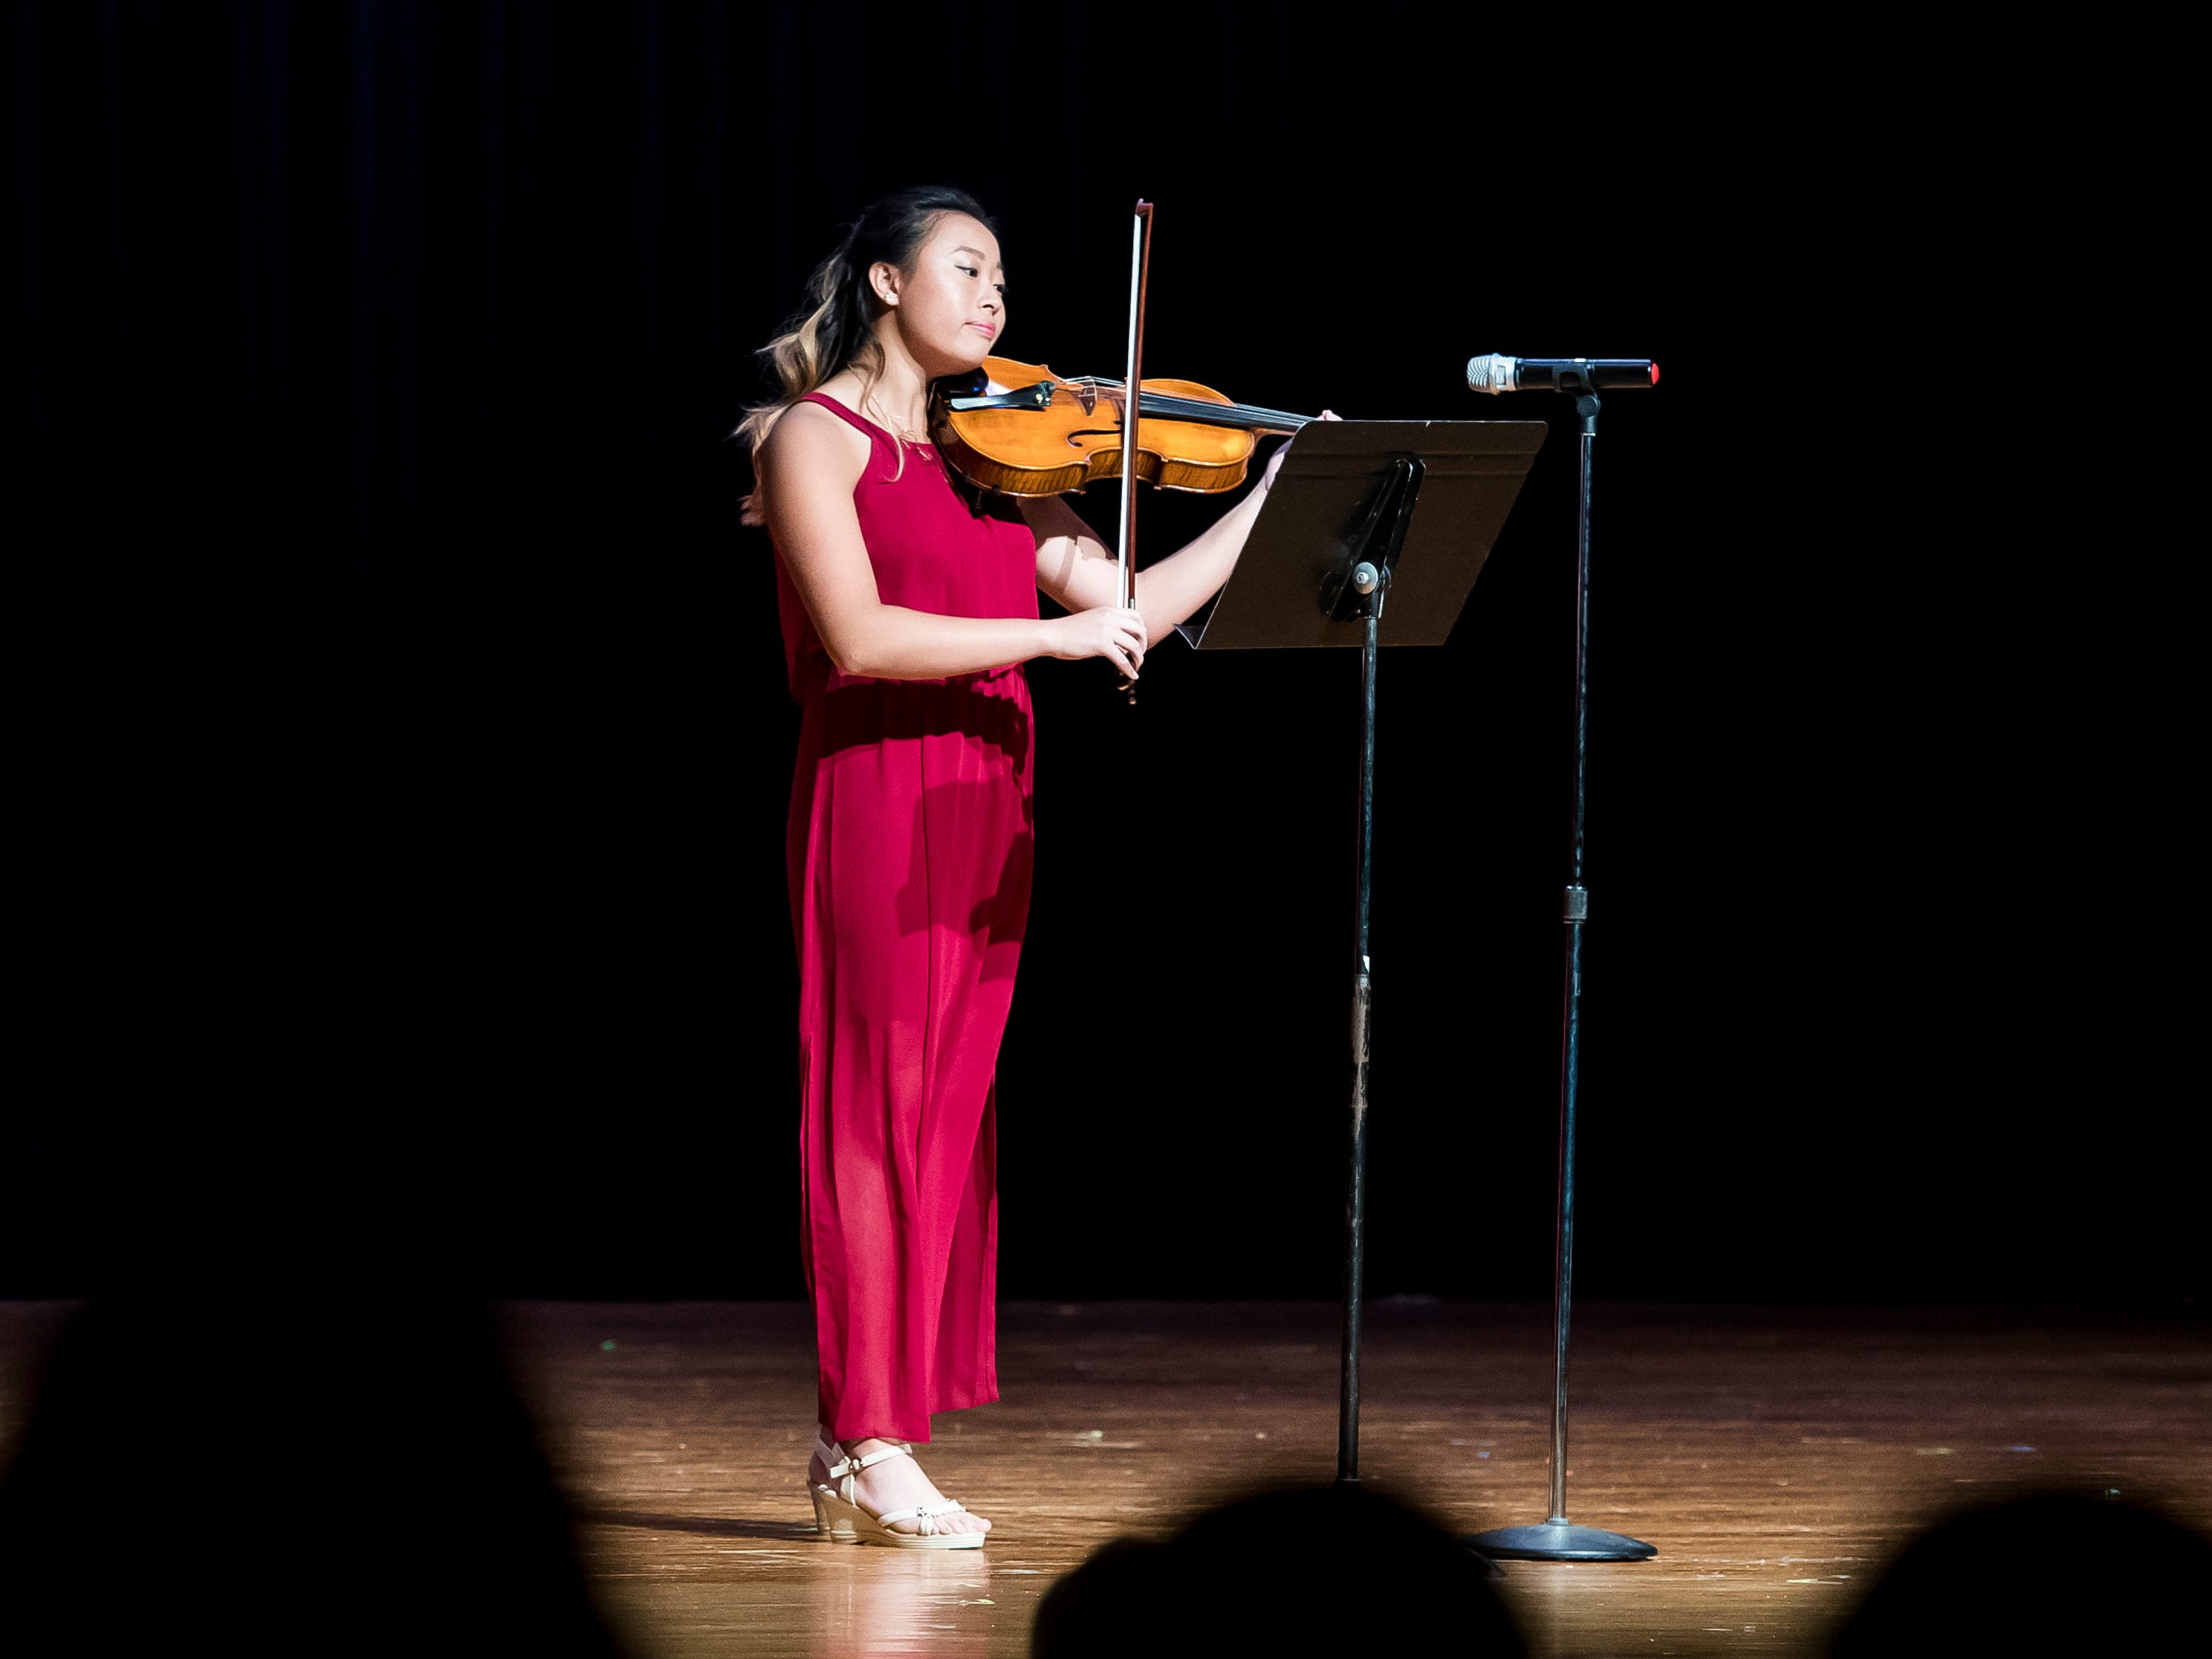 Karen Yang plays the viola during the talent competition at the 50th Miss Hanover Area pageant on Monday, October 22, 2018.